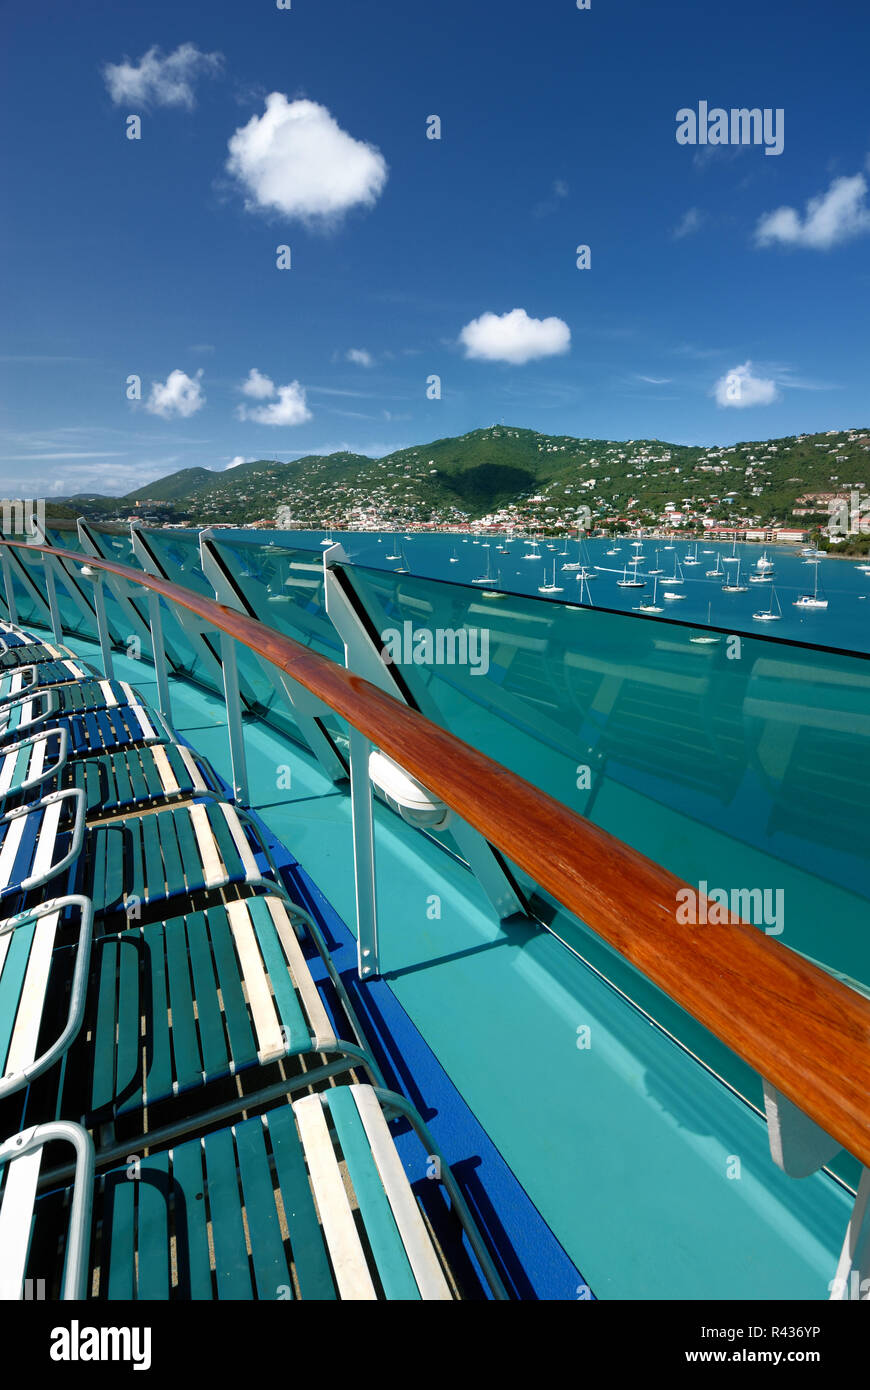 Lounge chairs along the railing of Royal Caribbean's Adventure of the Seas, overlooking St. Thomas, Virgin Islands. - Stock Image